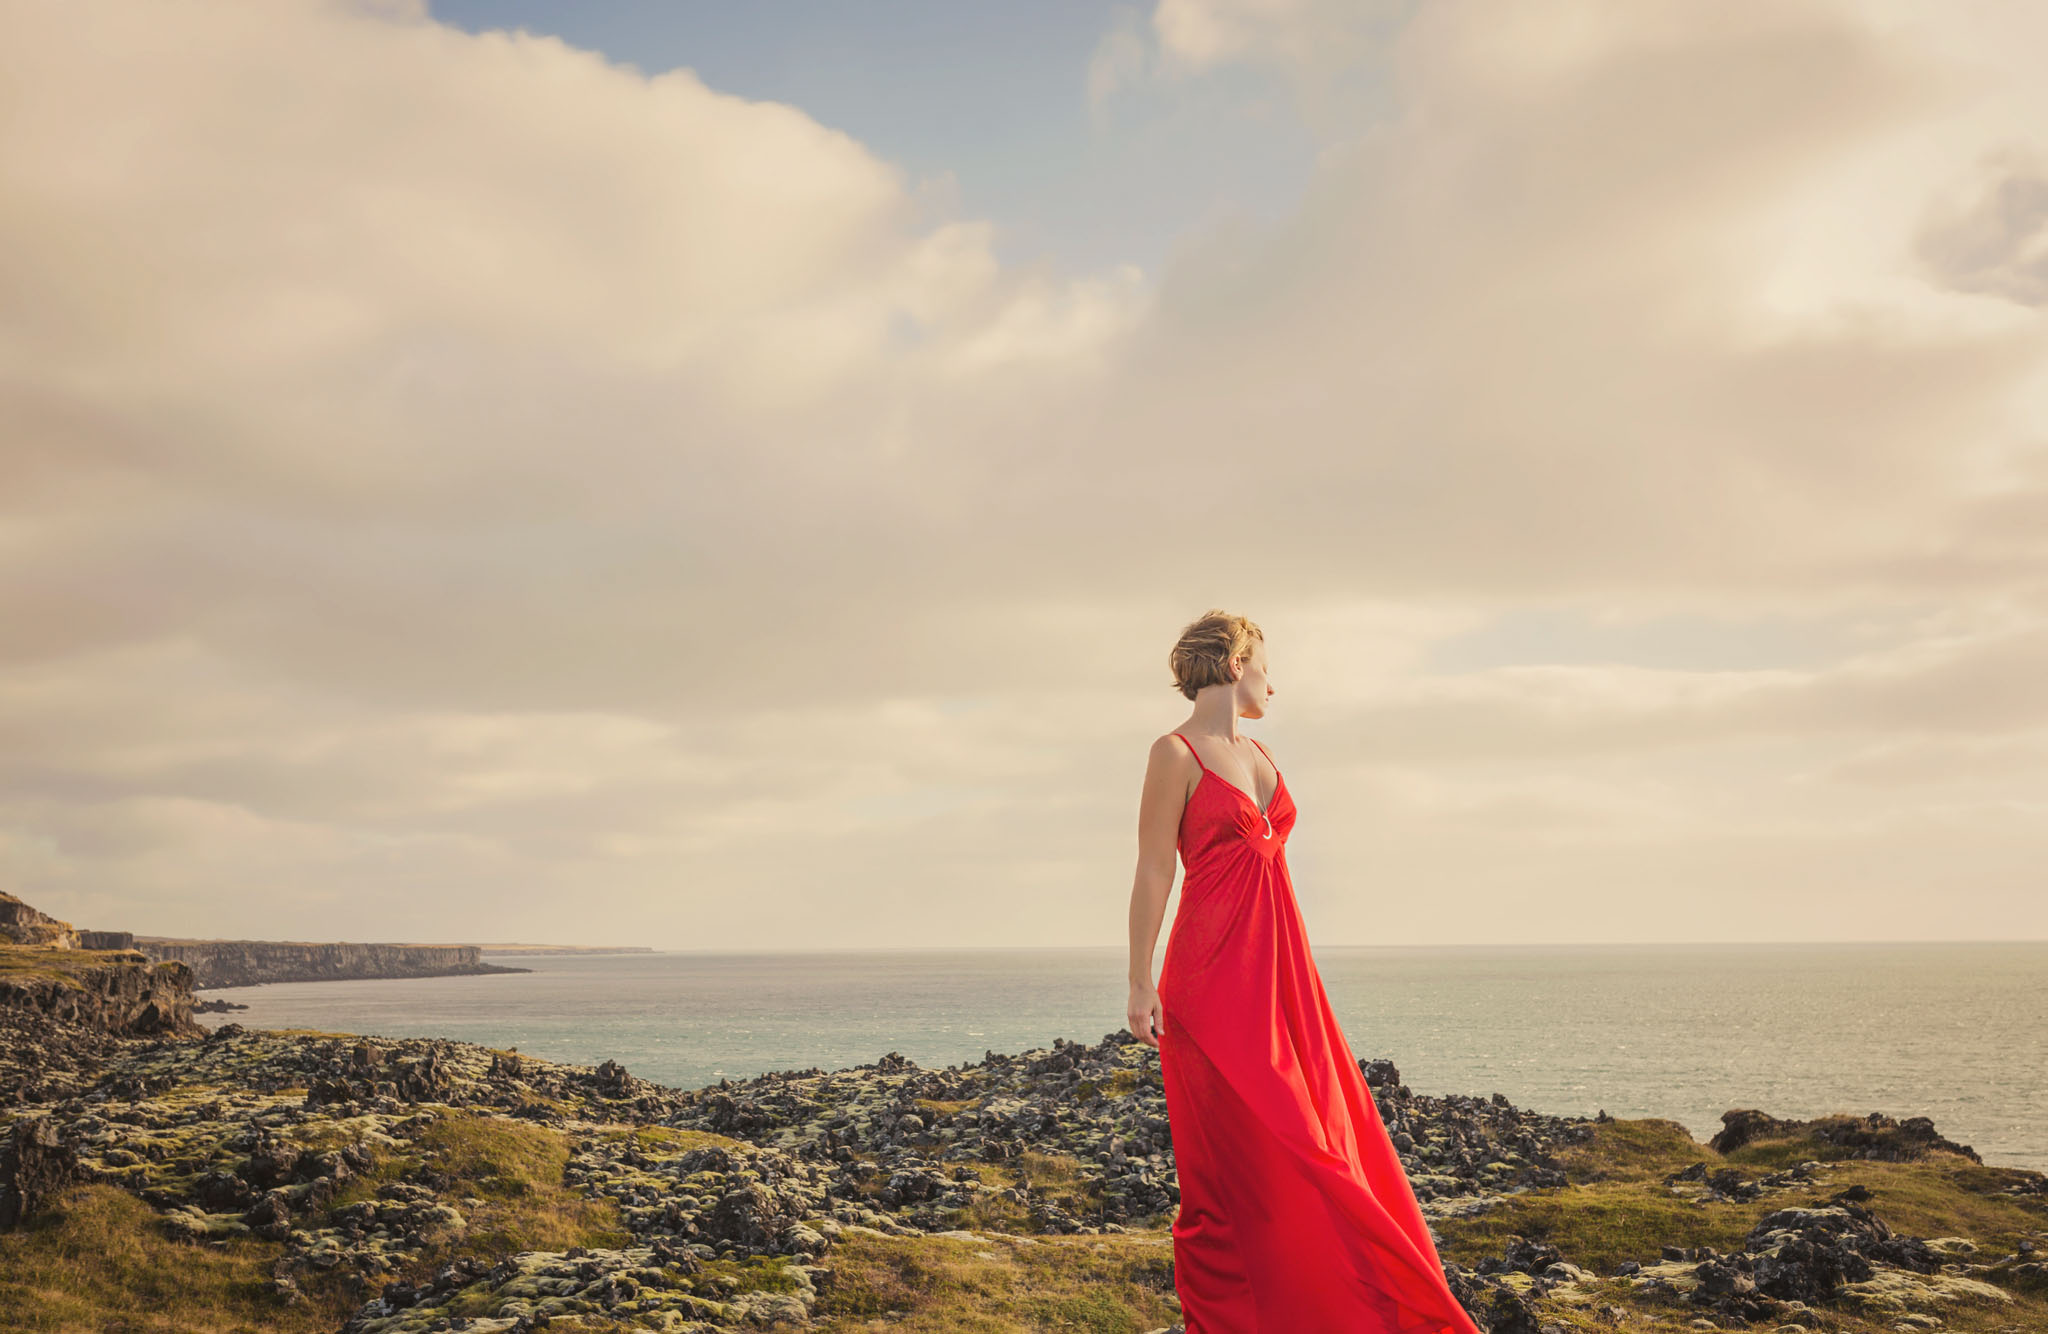 red dress project, iceland, jennifer picard photography, travel photographer